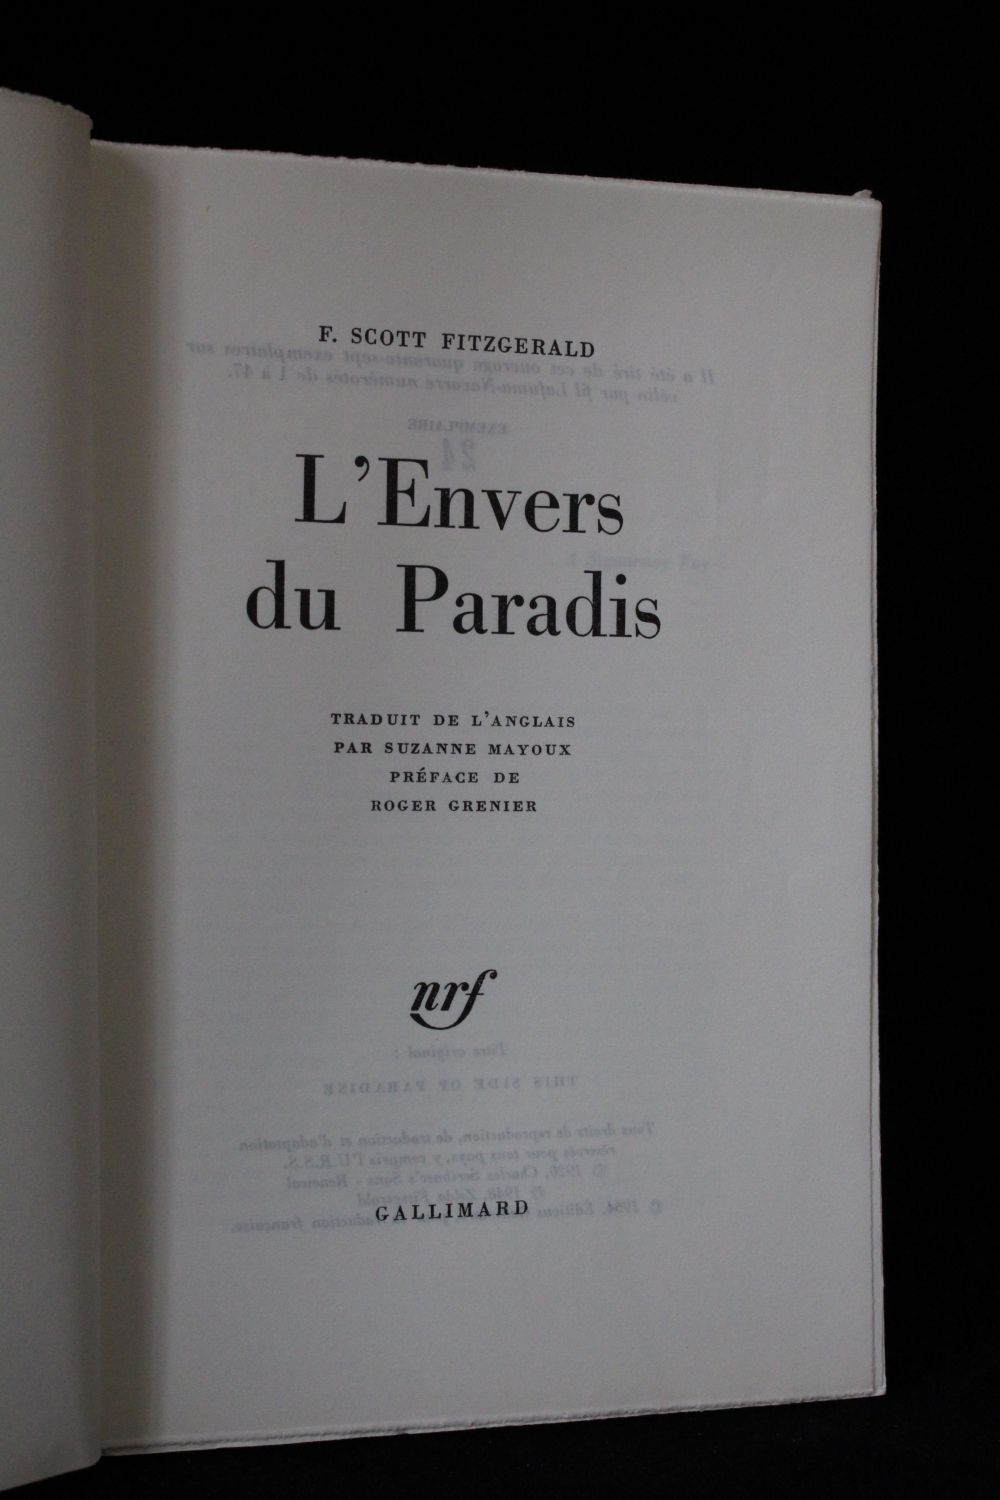 LENVERS DU PARADIS FITZGERALD EBOOK DOWNLOAD